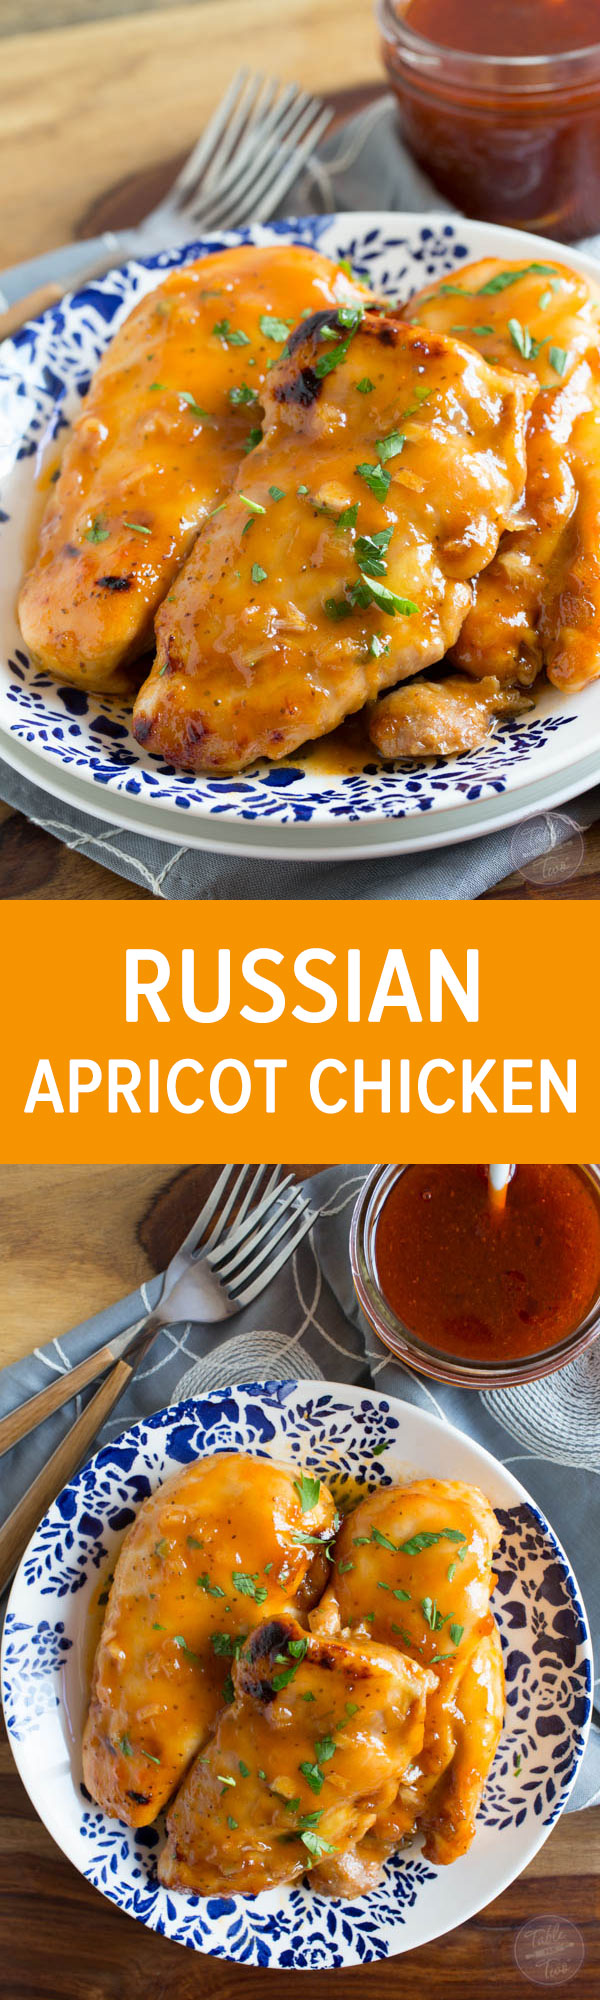 4 ingredients only! If you love sweet and tangy flavors, then you'll love this Russian apricot chicken recipe! It's plate-licking good!